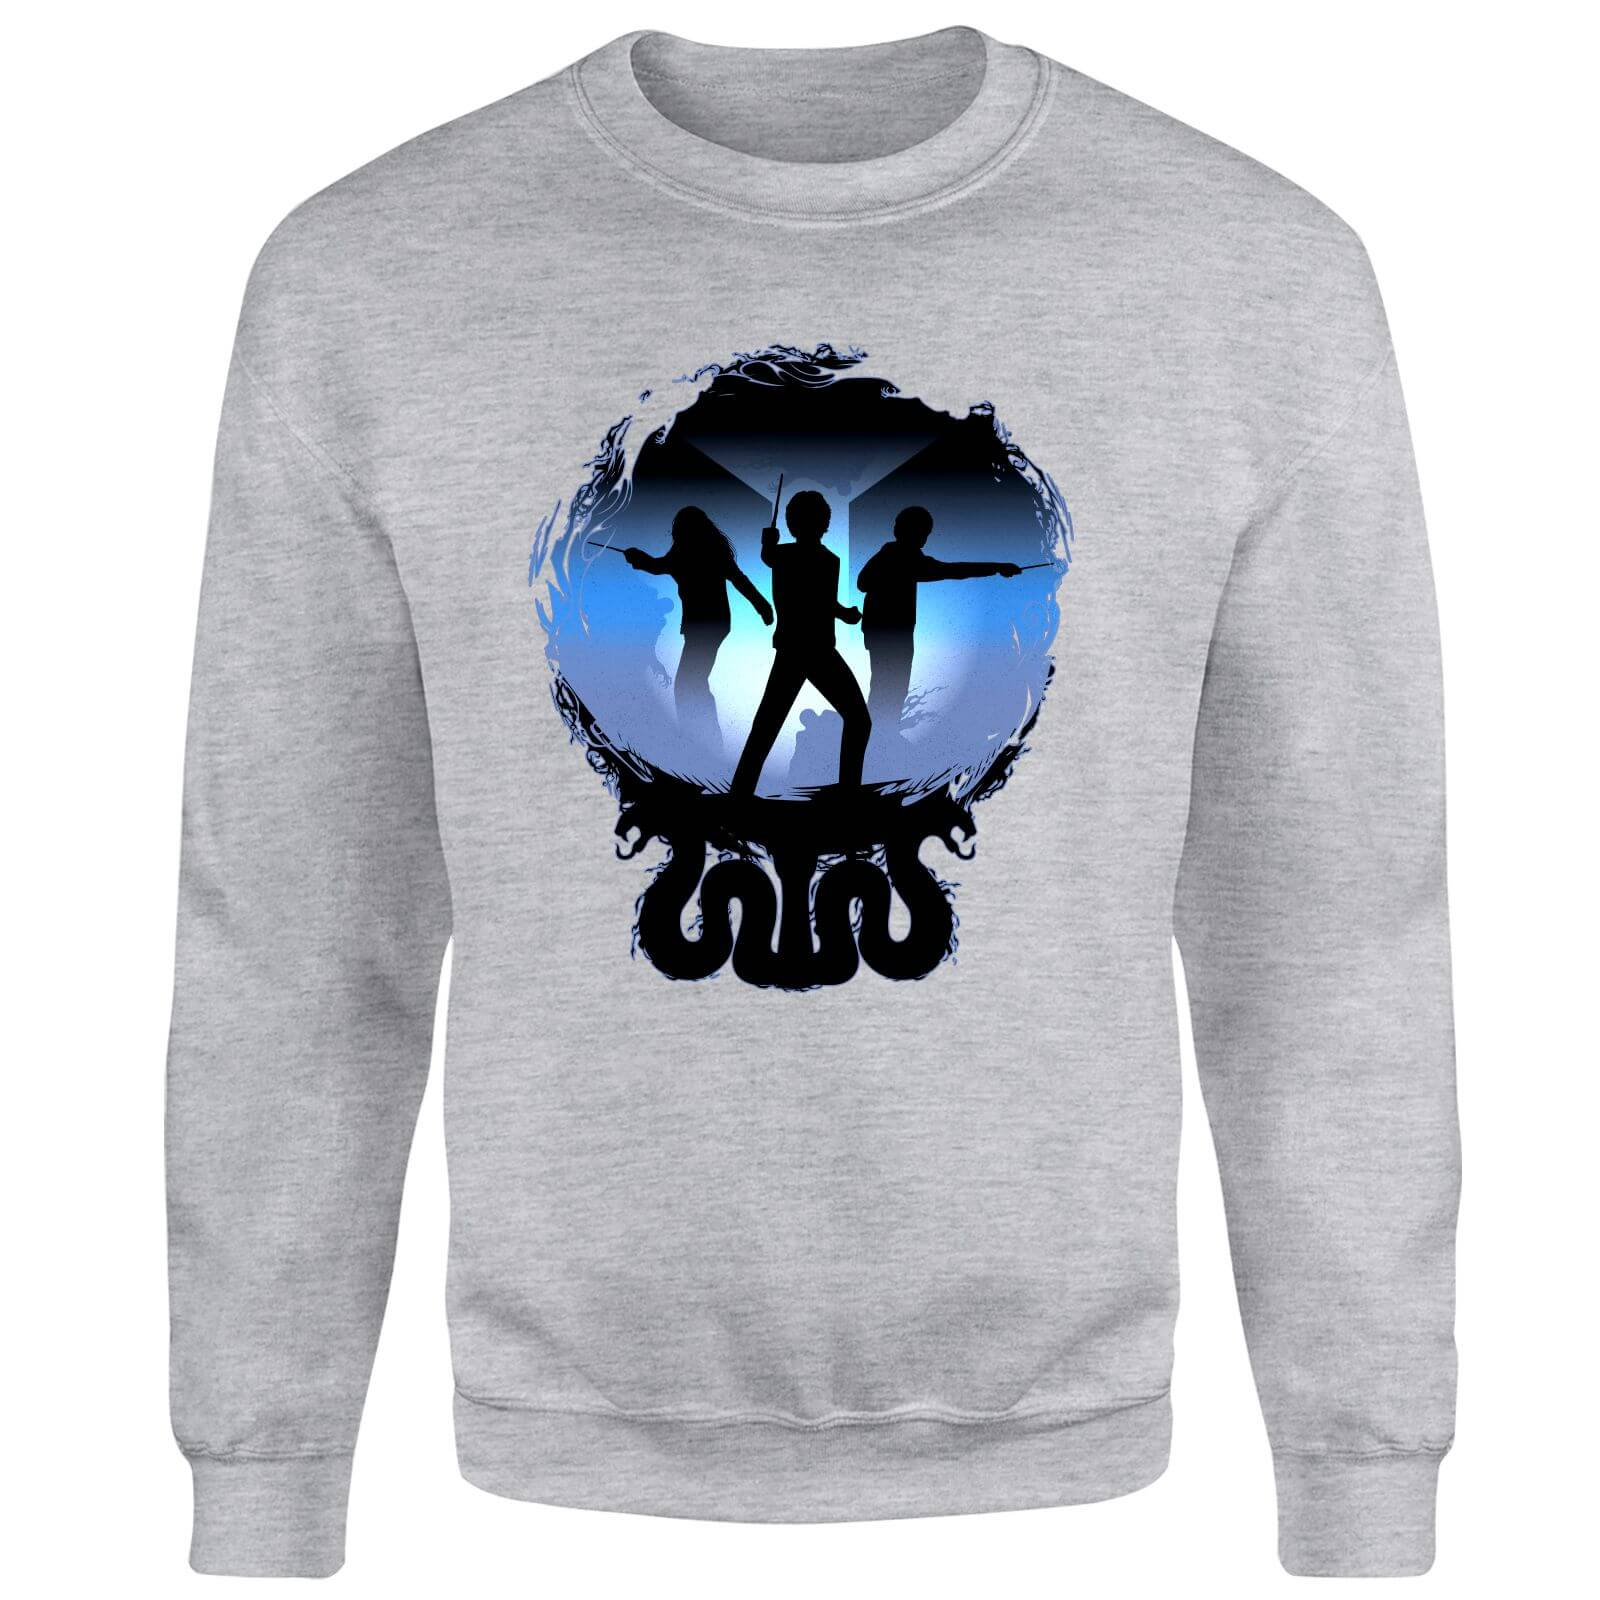 Harry Potter Silhouette Attack Sweatshirt - Grey